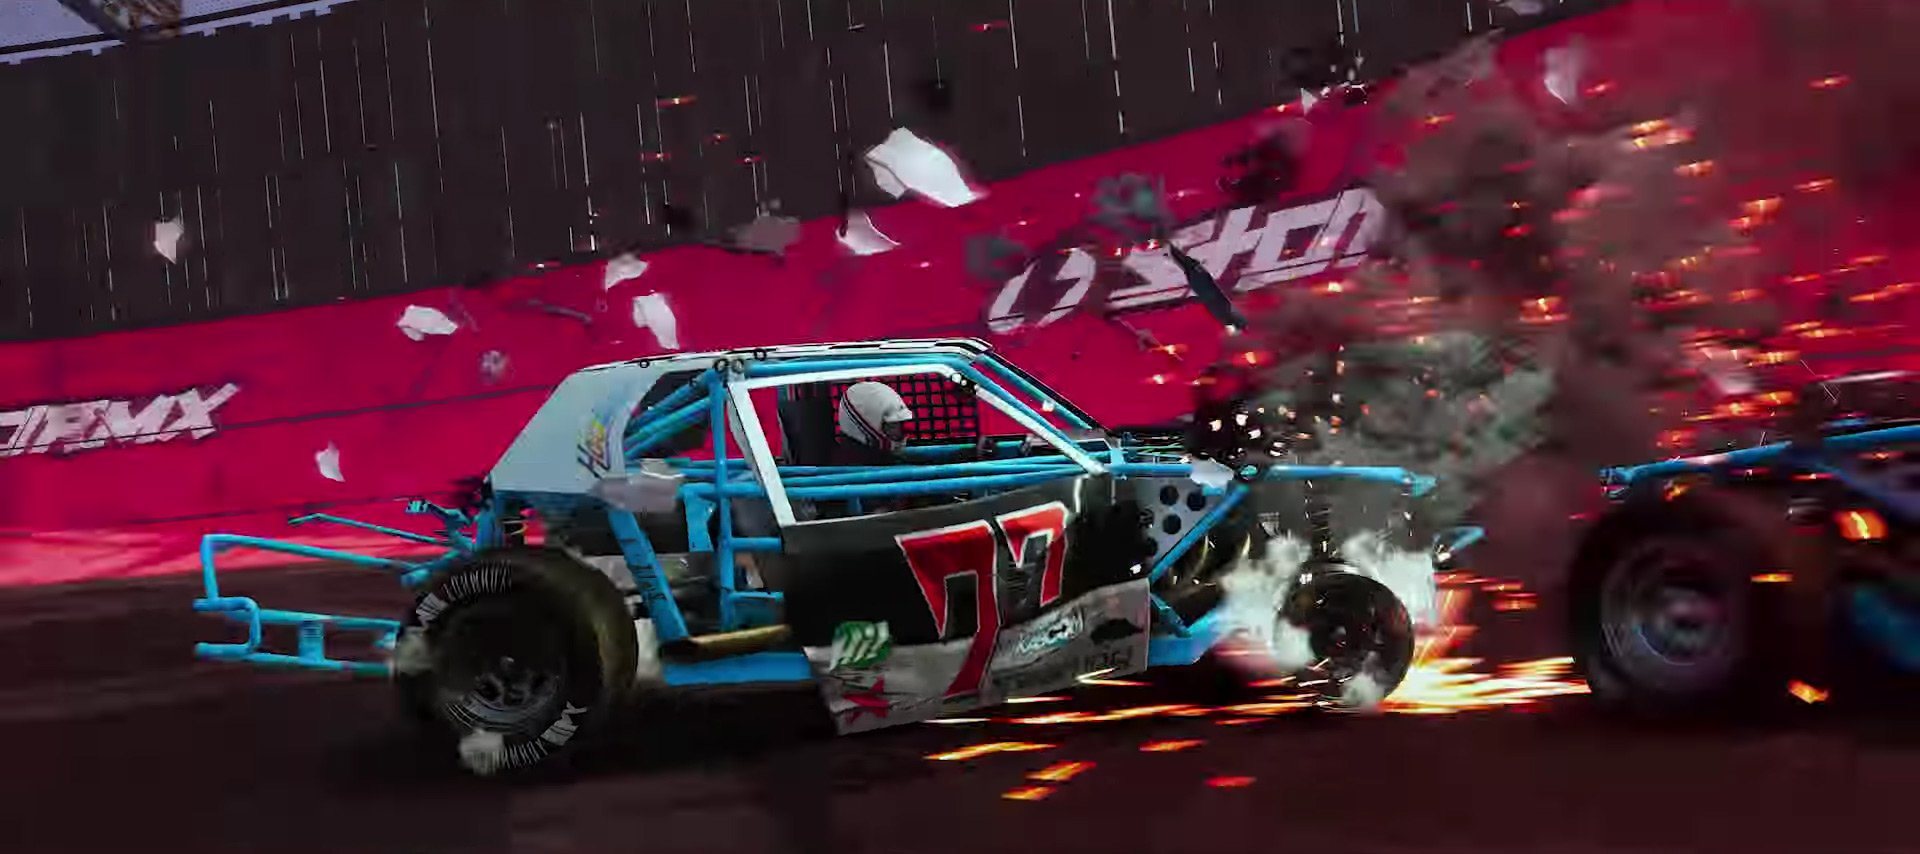 The demolition derby seems like a fine reason to revisit The Crew 2 screenshot